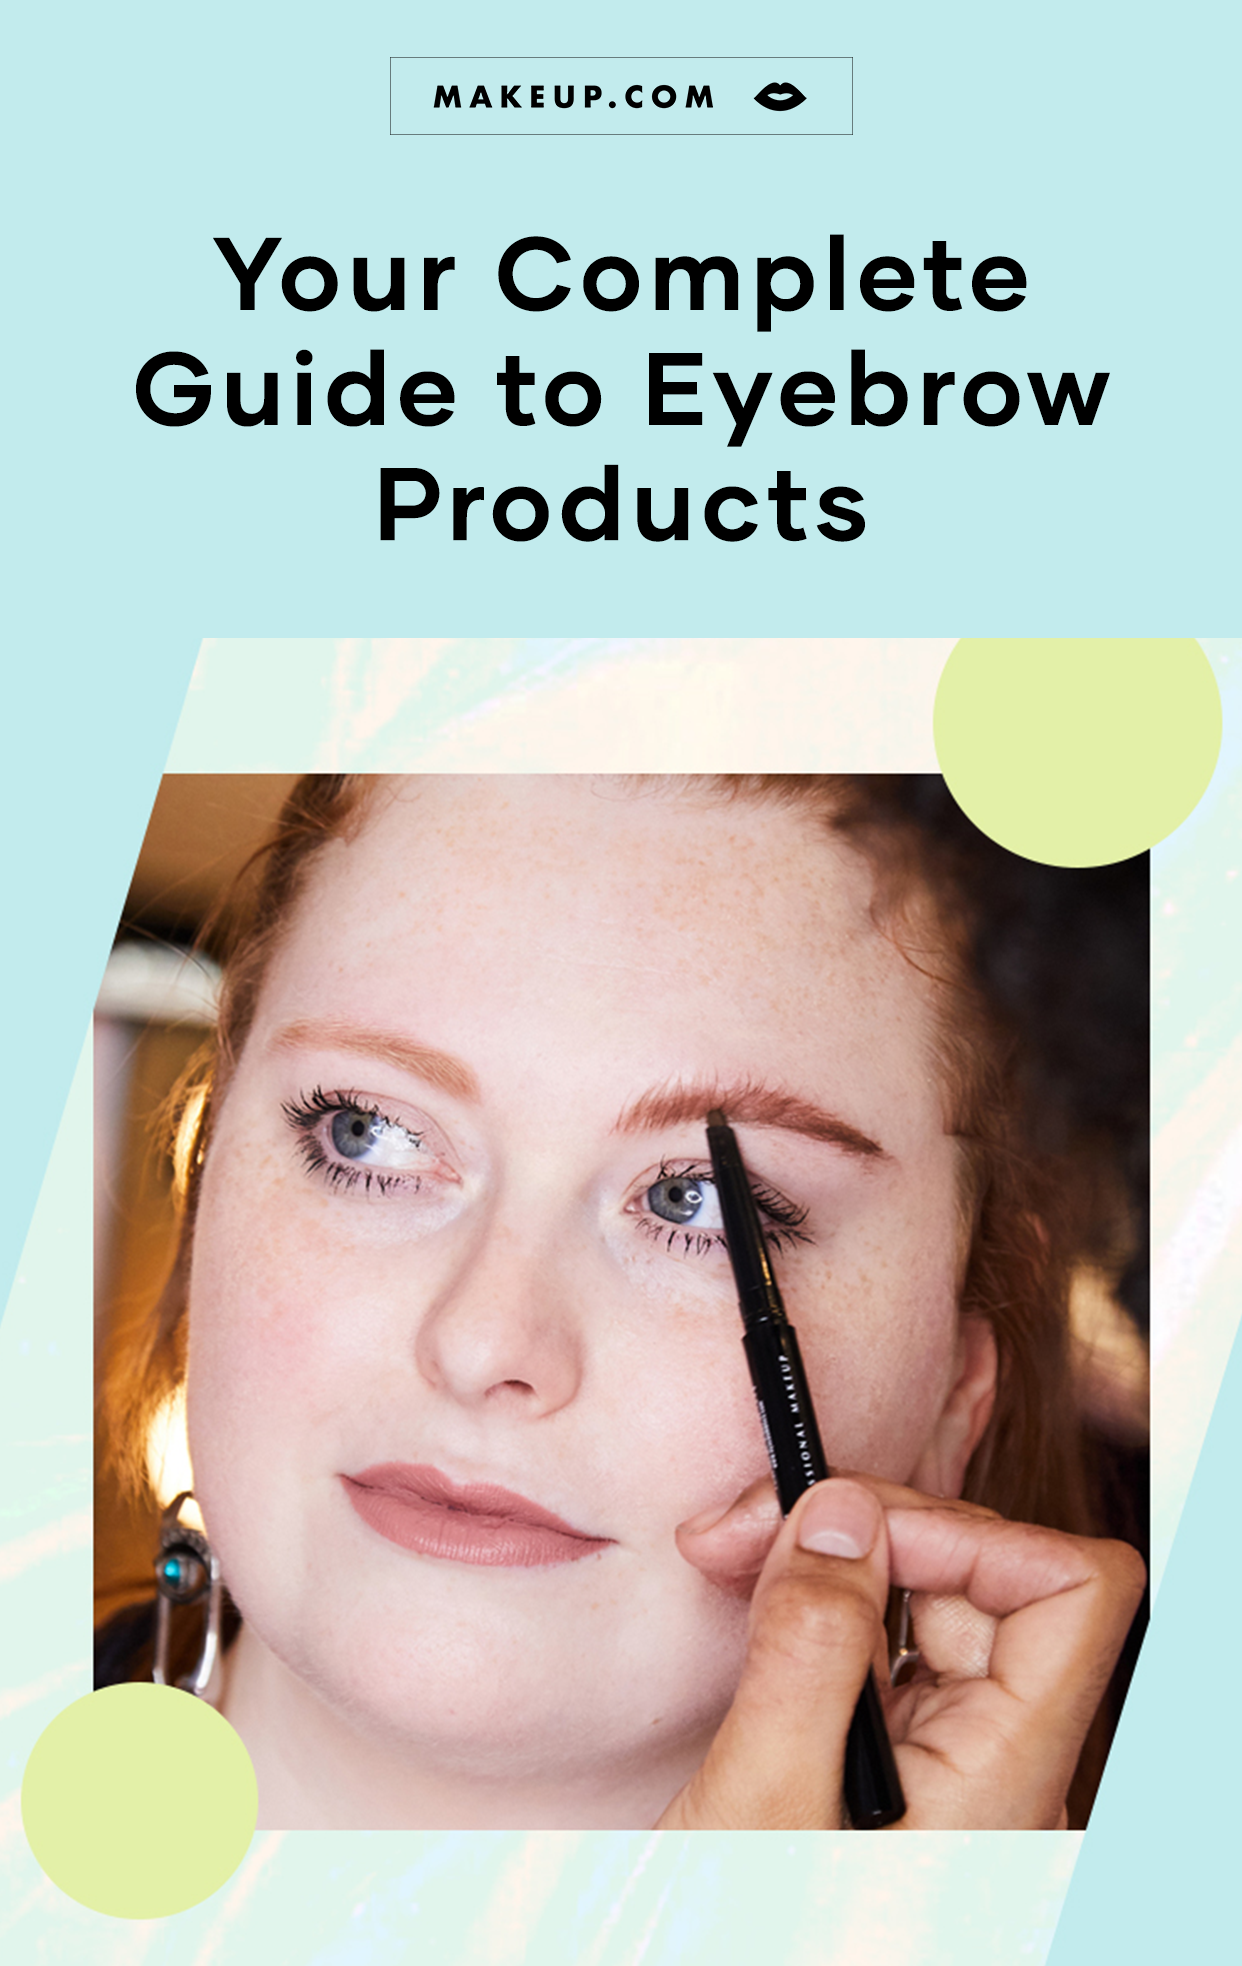 Feeling lost when it comes to different brow products? We broke down how to use an eyebrow pencil, powder, pomade, gel and pen, ahead. #makeup #makeuproutine #makeupproducts #eyebrows #eyebrowproducts #eyebrowtutorial #eyebrowguide #eyebrowhowto #makeupadvice #makeuptips #makeuphowto #fall #beauty #fallbeauty #winterbeauty #winter #eyemakeup #nyxcosmetics #besteyebrowproducts #eyebrowshowto